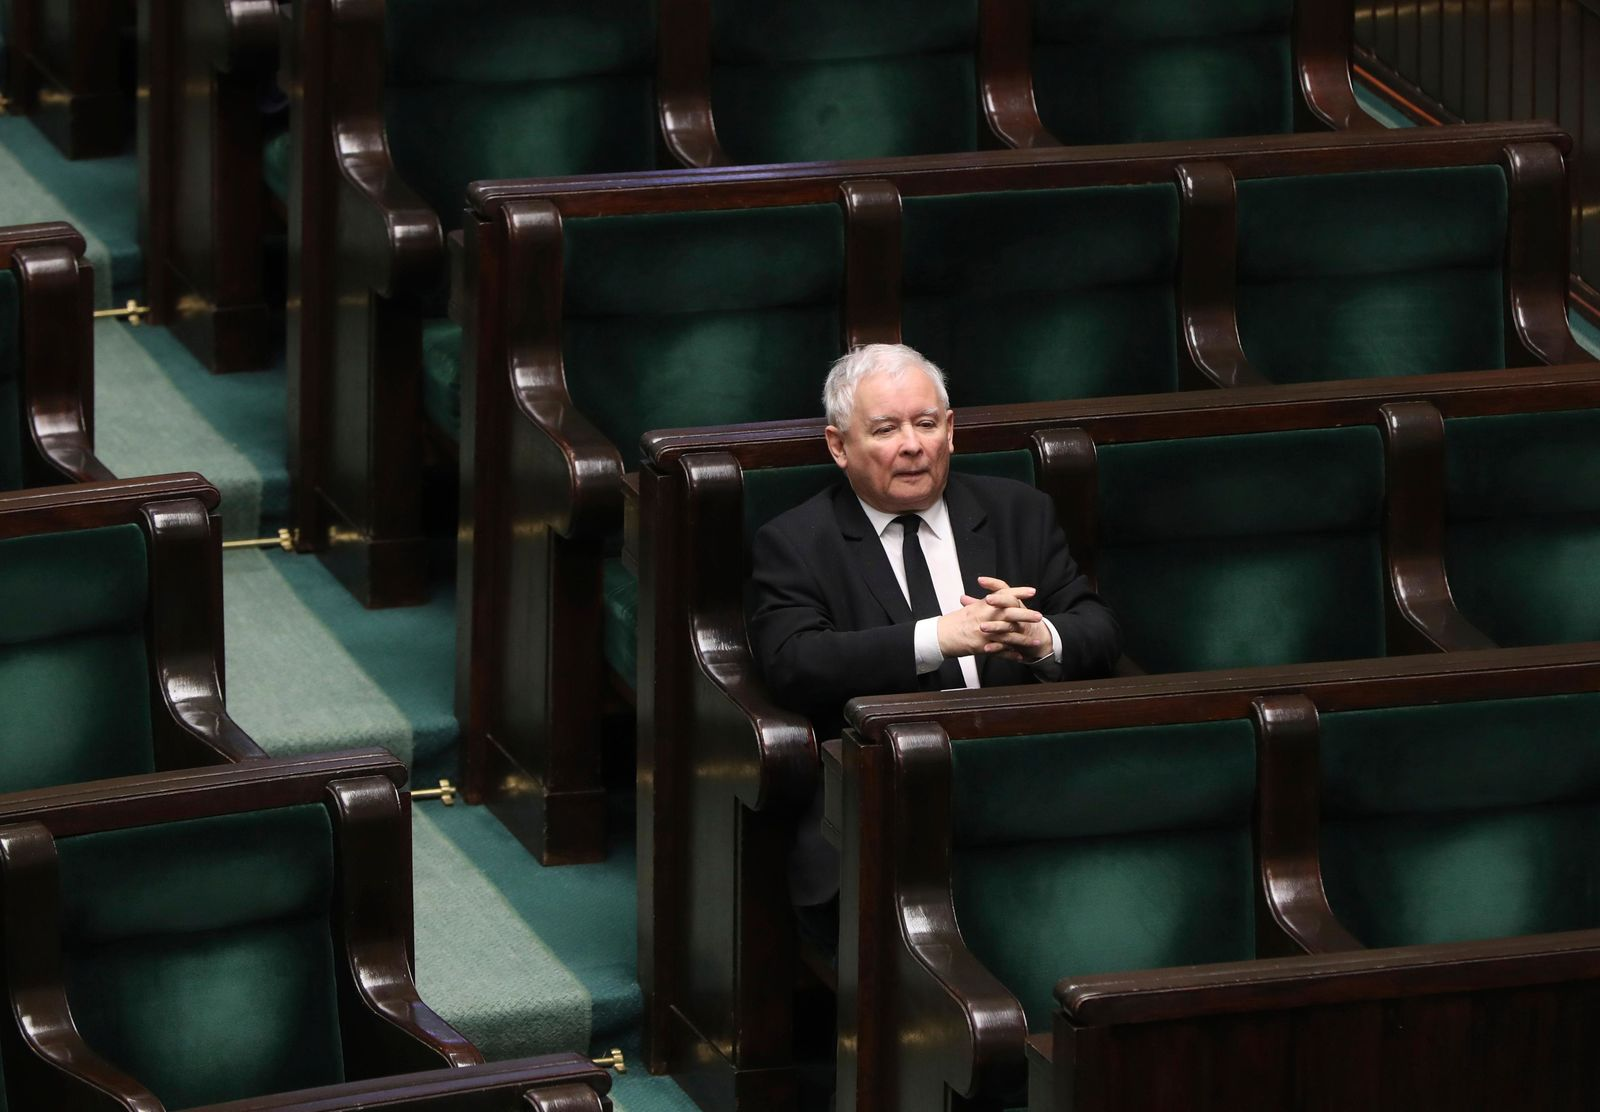 Jaroslaw Kaczynski, leader of the conservative ruling party Law and Justice, takes part in a parliamentary session in Warsaw, Poland, Friday, April 3, 2020.{ } (AP Photo/Czarek Sokolowski)